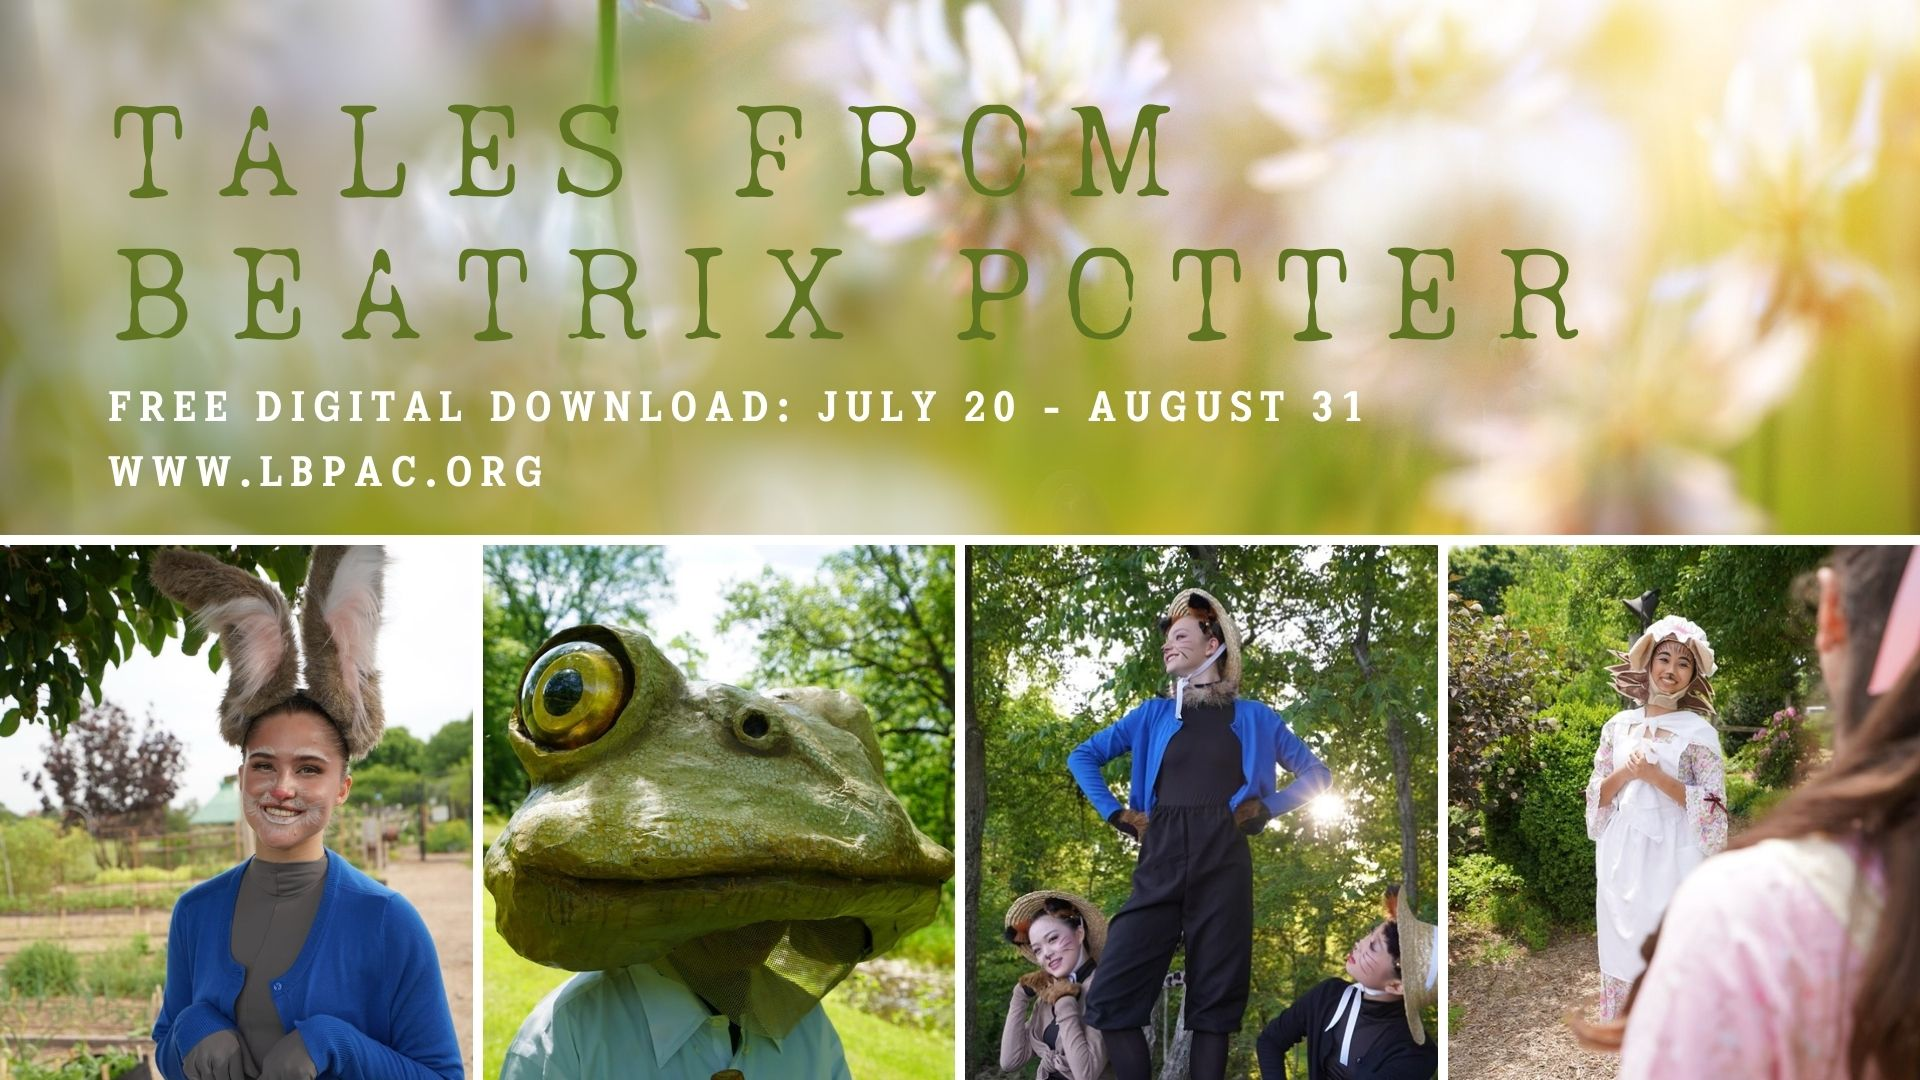 Tales From Beatrix Potter presented by Loudoun Ballet Performing Arts Company